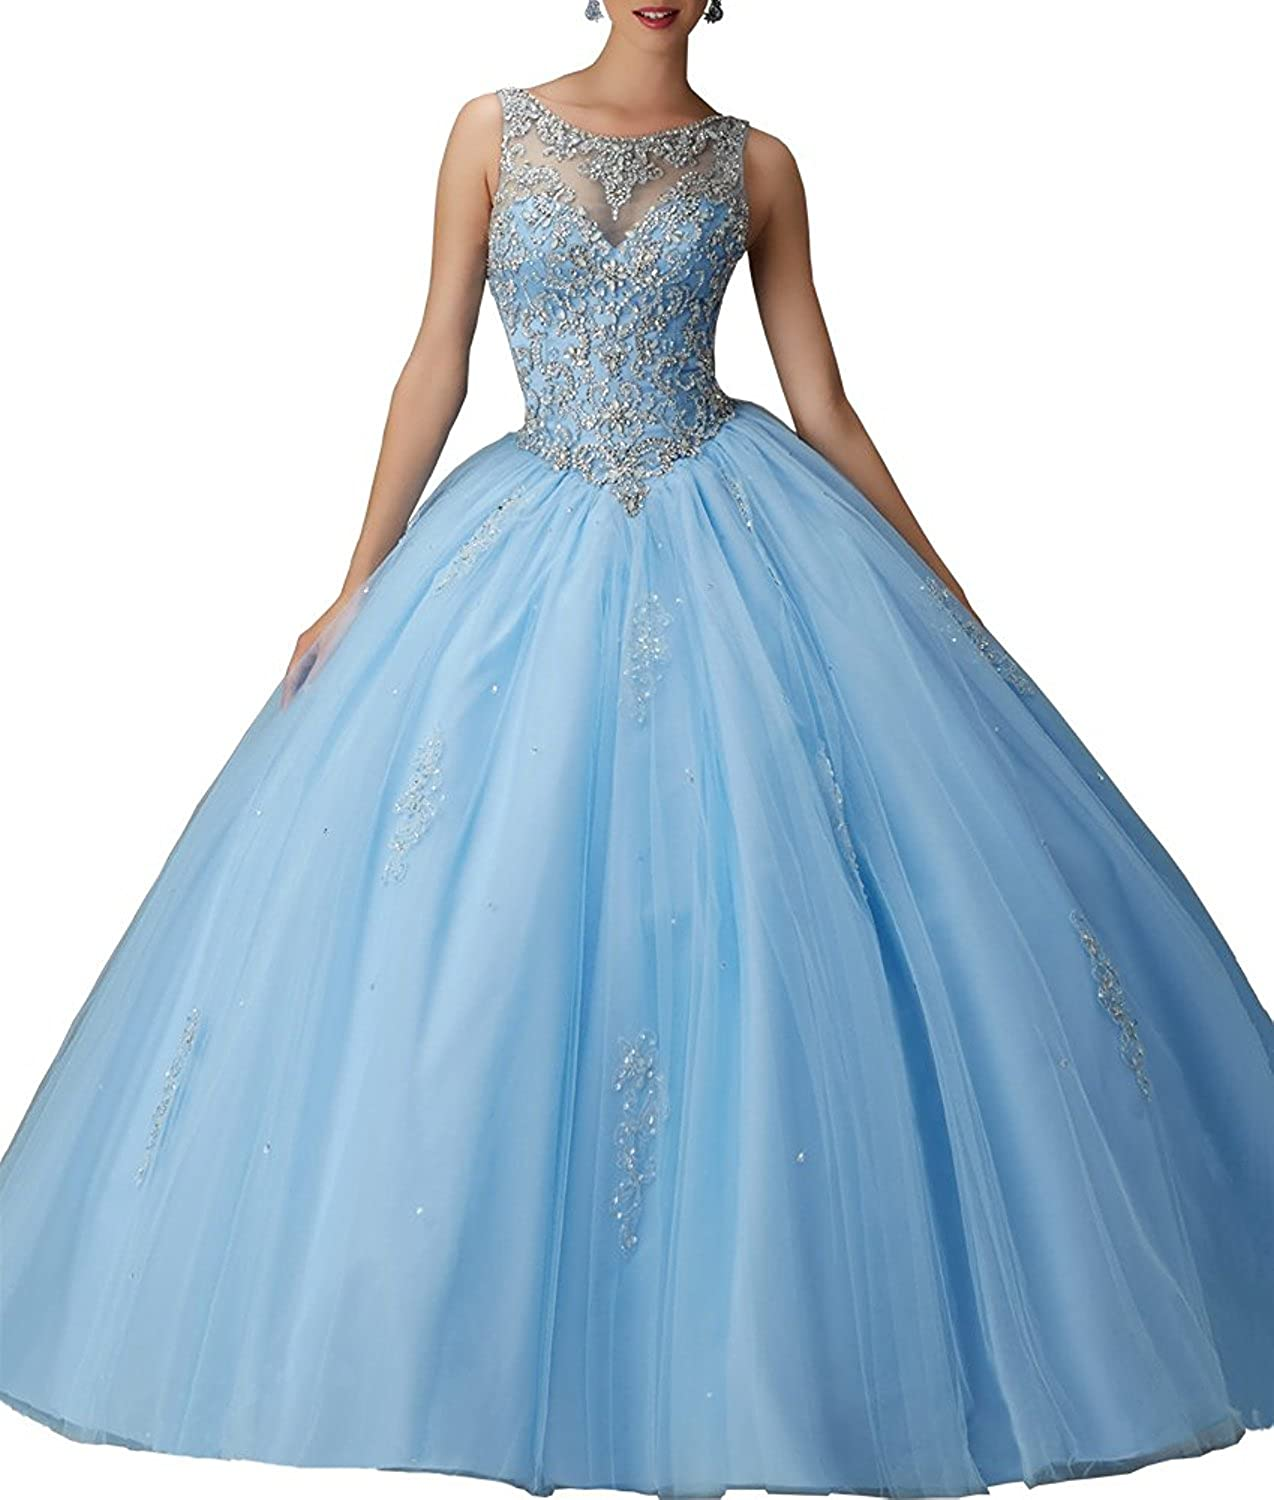 bluee XSWPL Girls Sweet 16 Birthday Party Dress Ball Gown Beads Prom Quinceanera Dresses